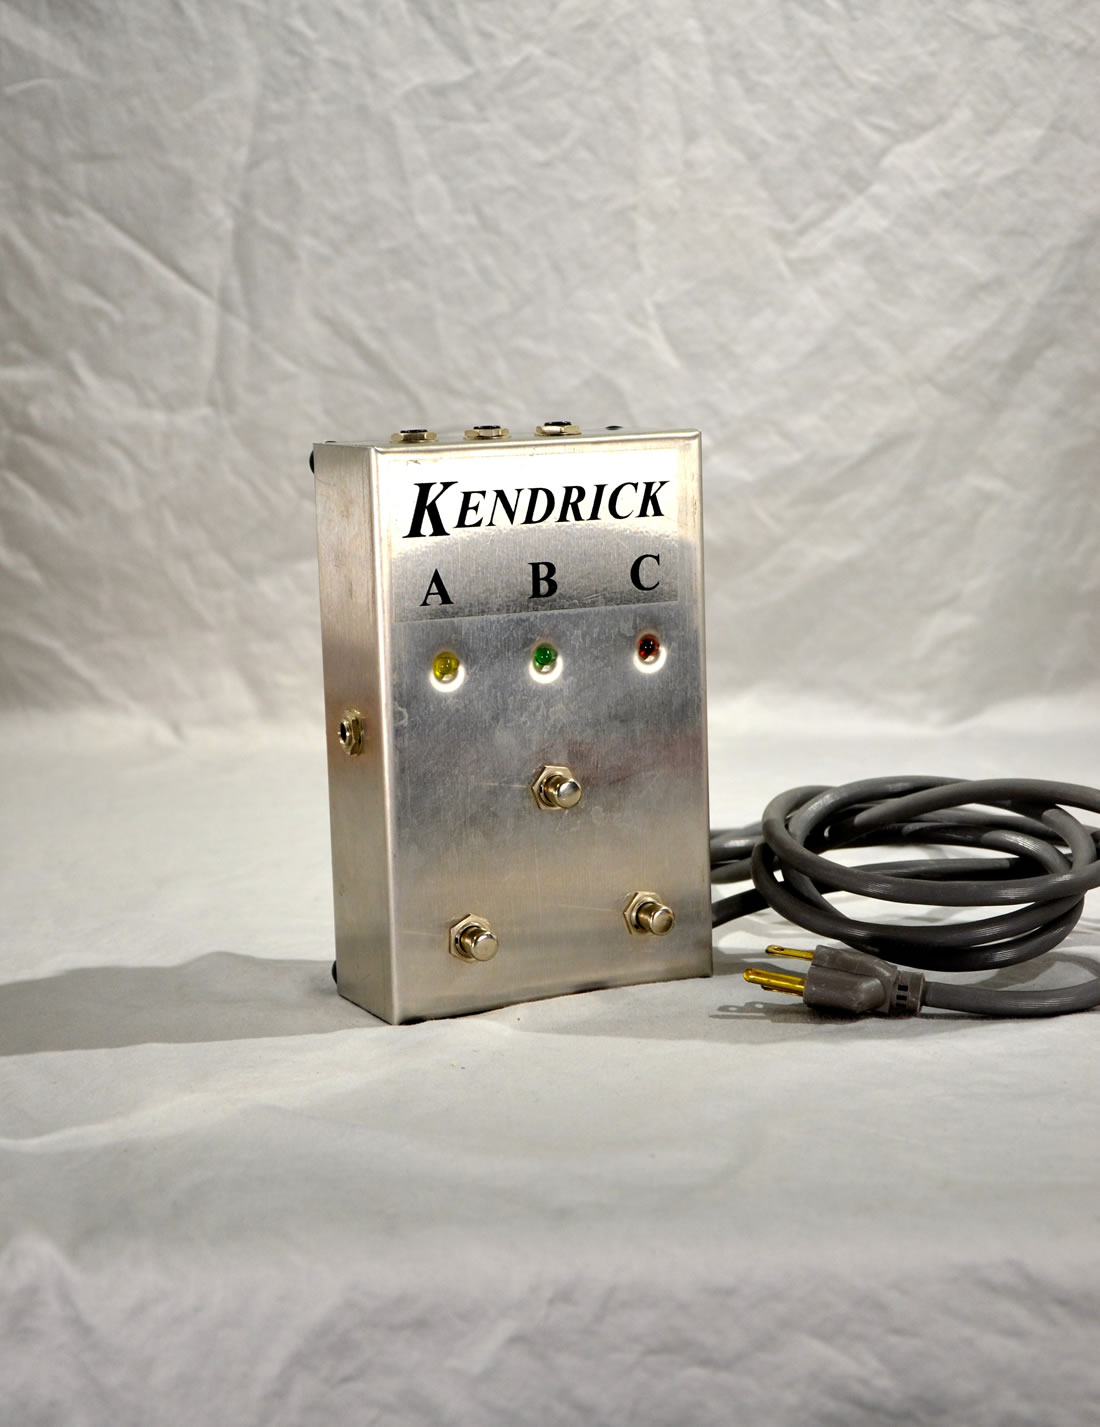 Kendrick A / B / C Switching Box